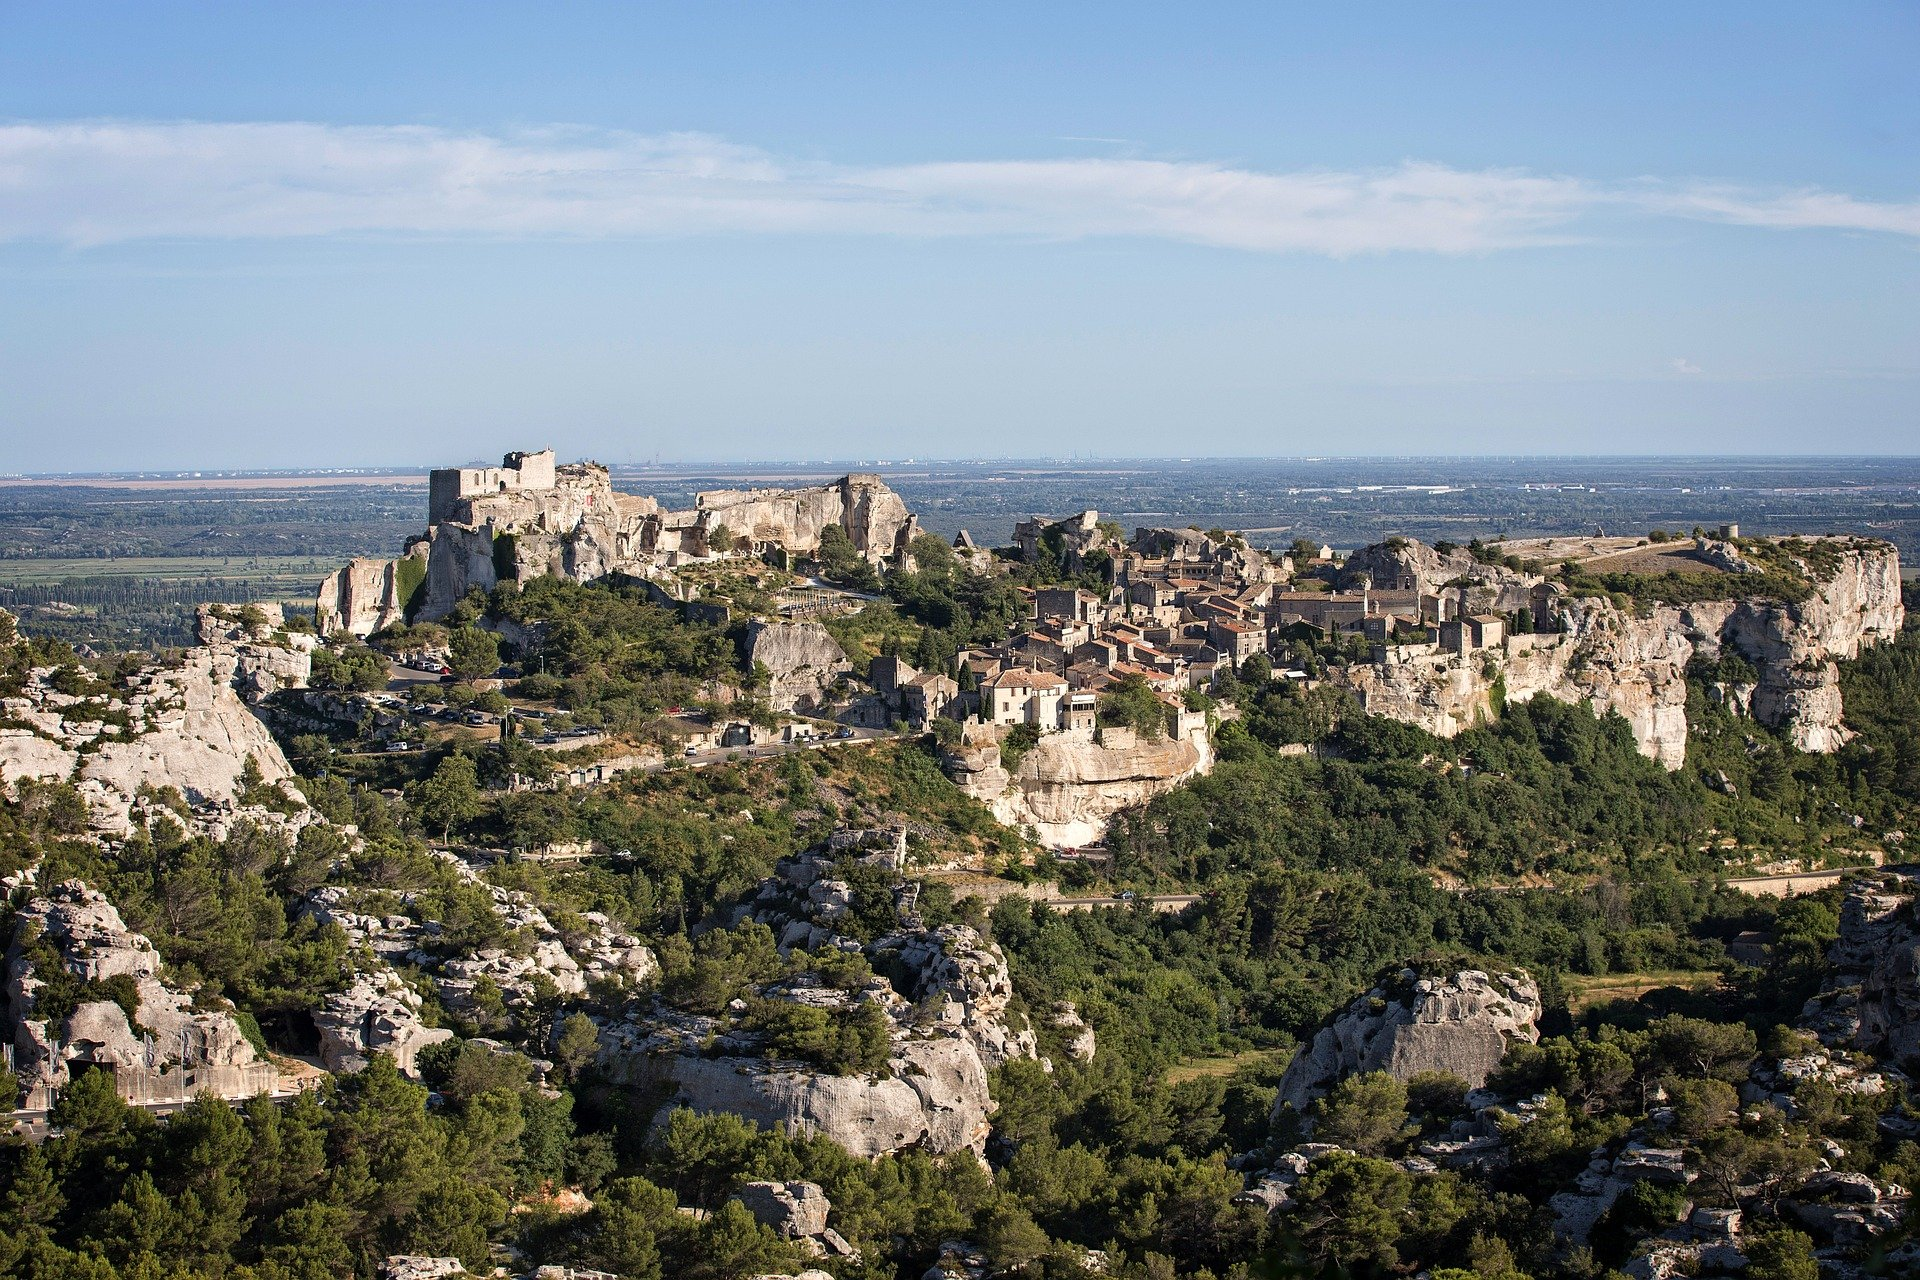 Aerial view of Baux de Provence